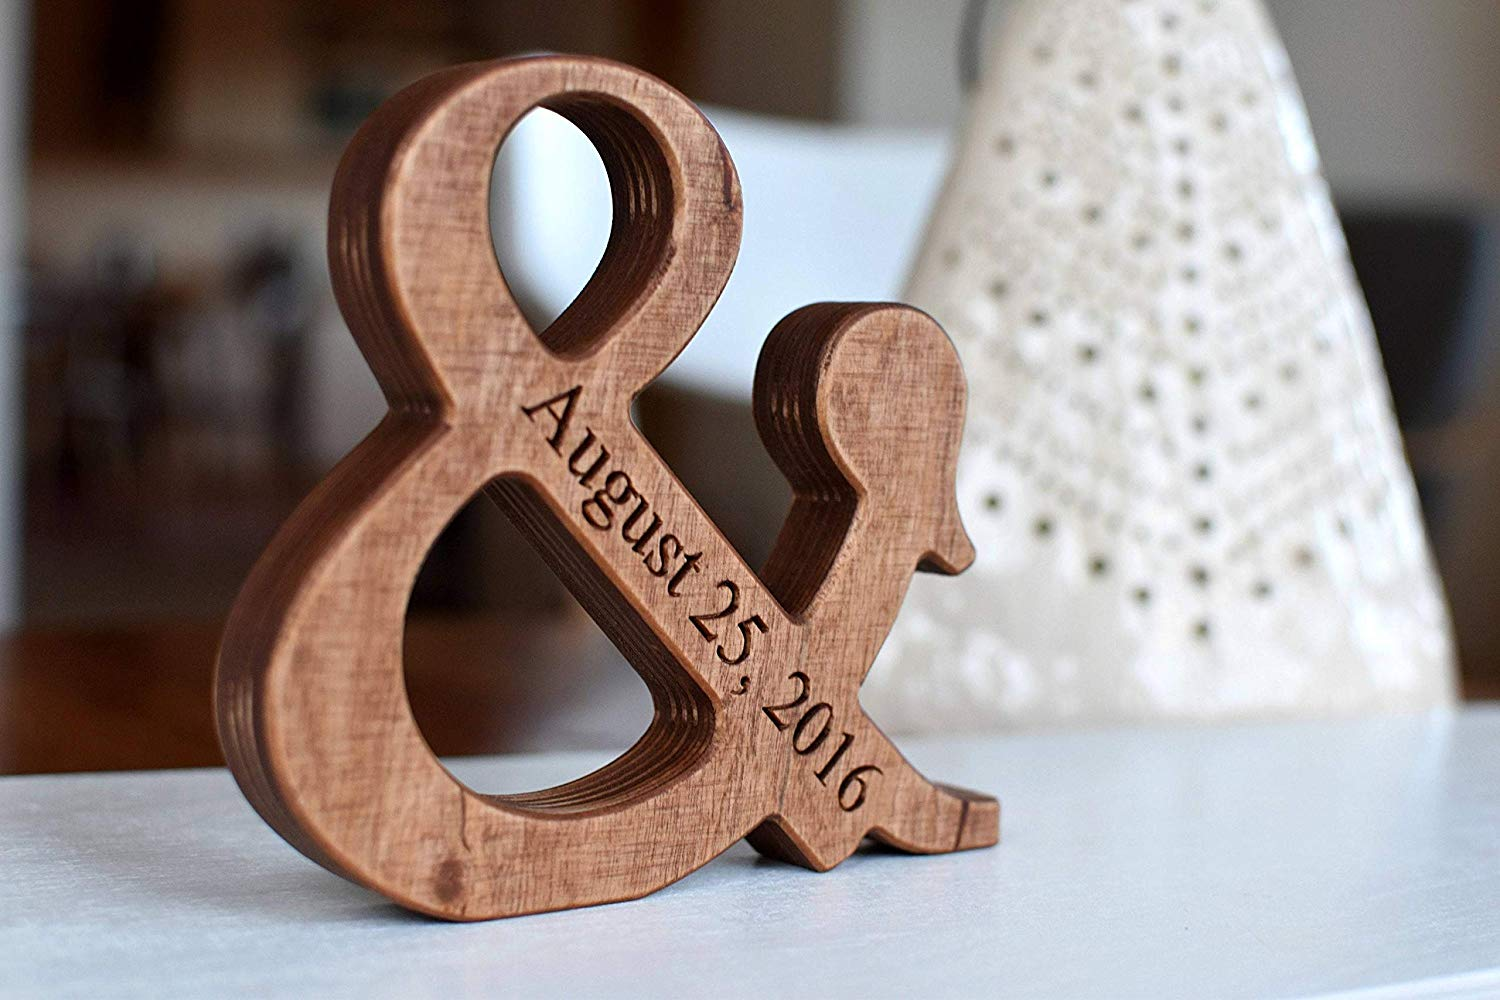 6'' Personalized Wood Ampersand - Free Standing Wooden Letter Ampersand - Valentines Day or Wedding Gift - Home Decor and 5th Wedding Anniversary Gift